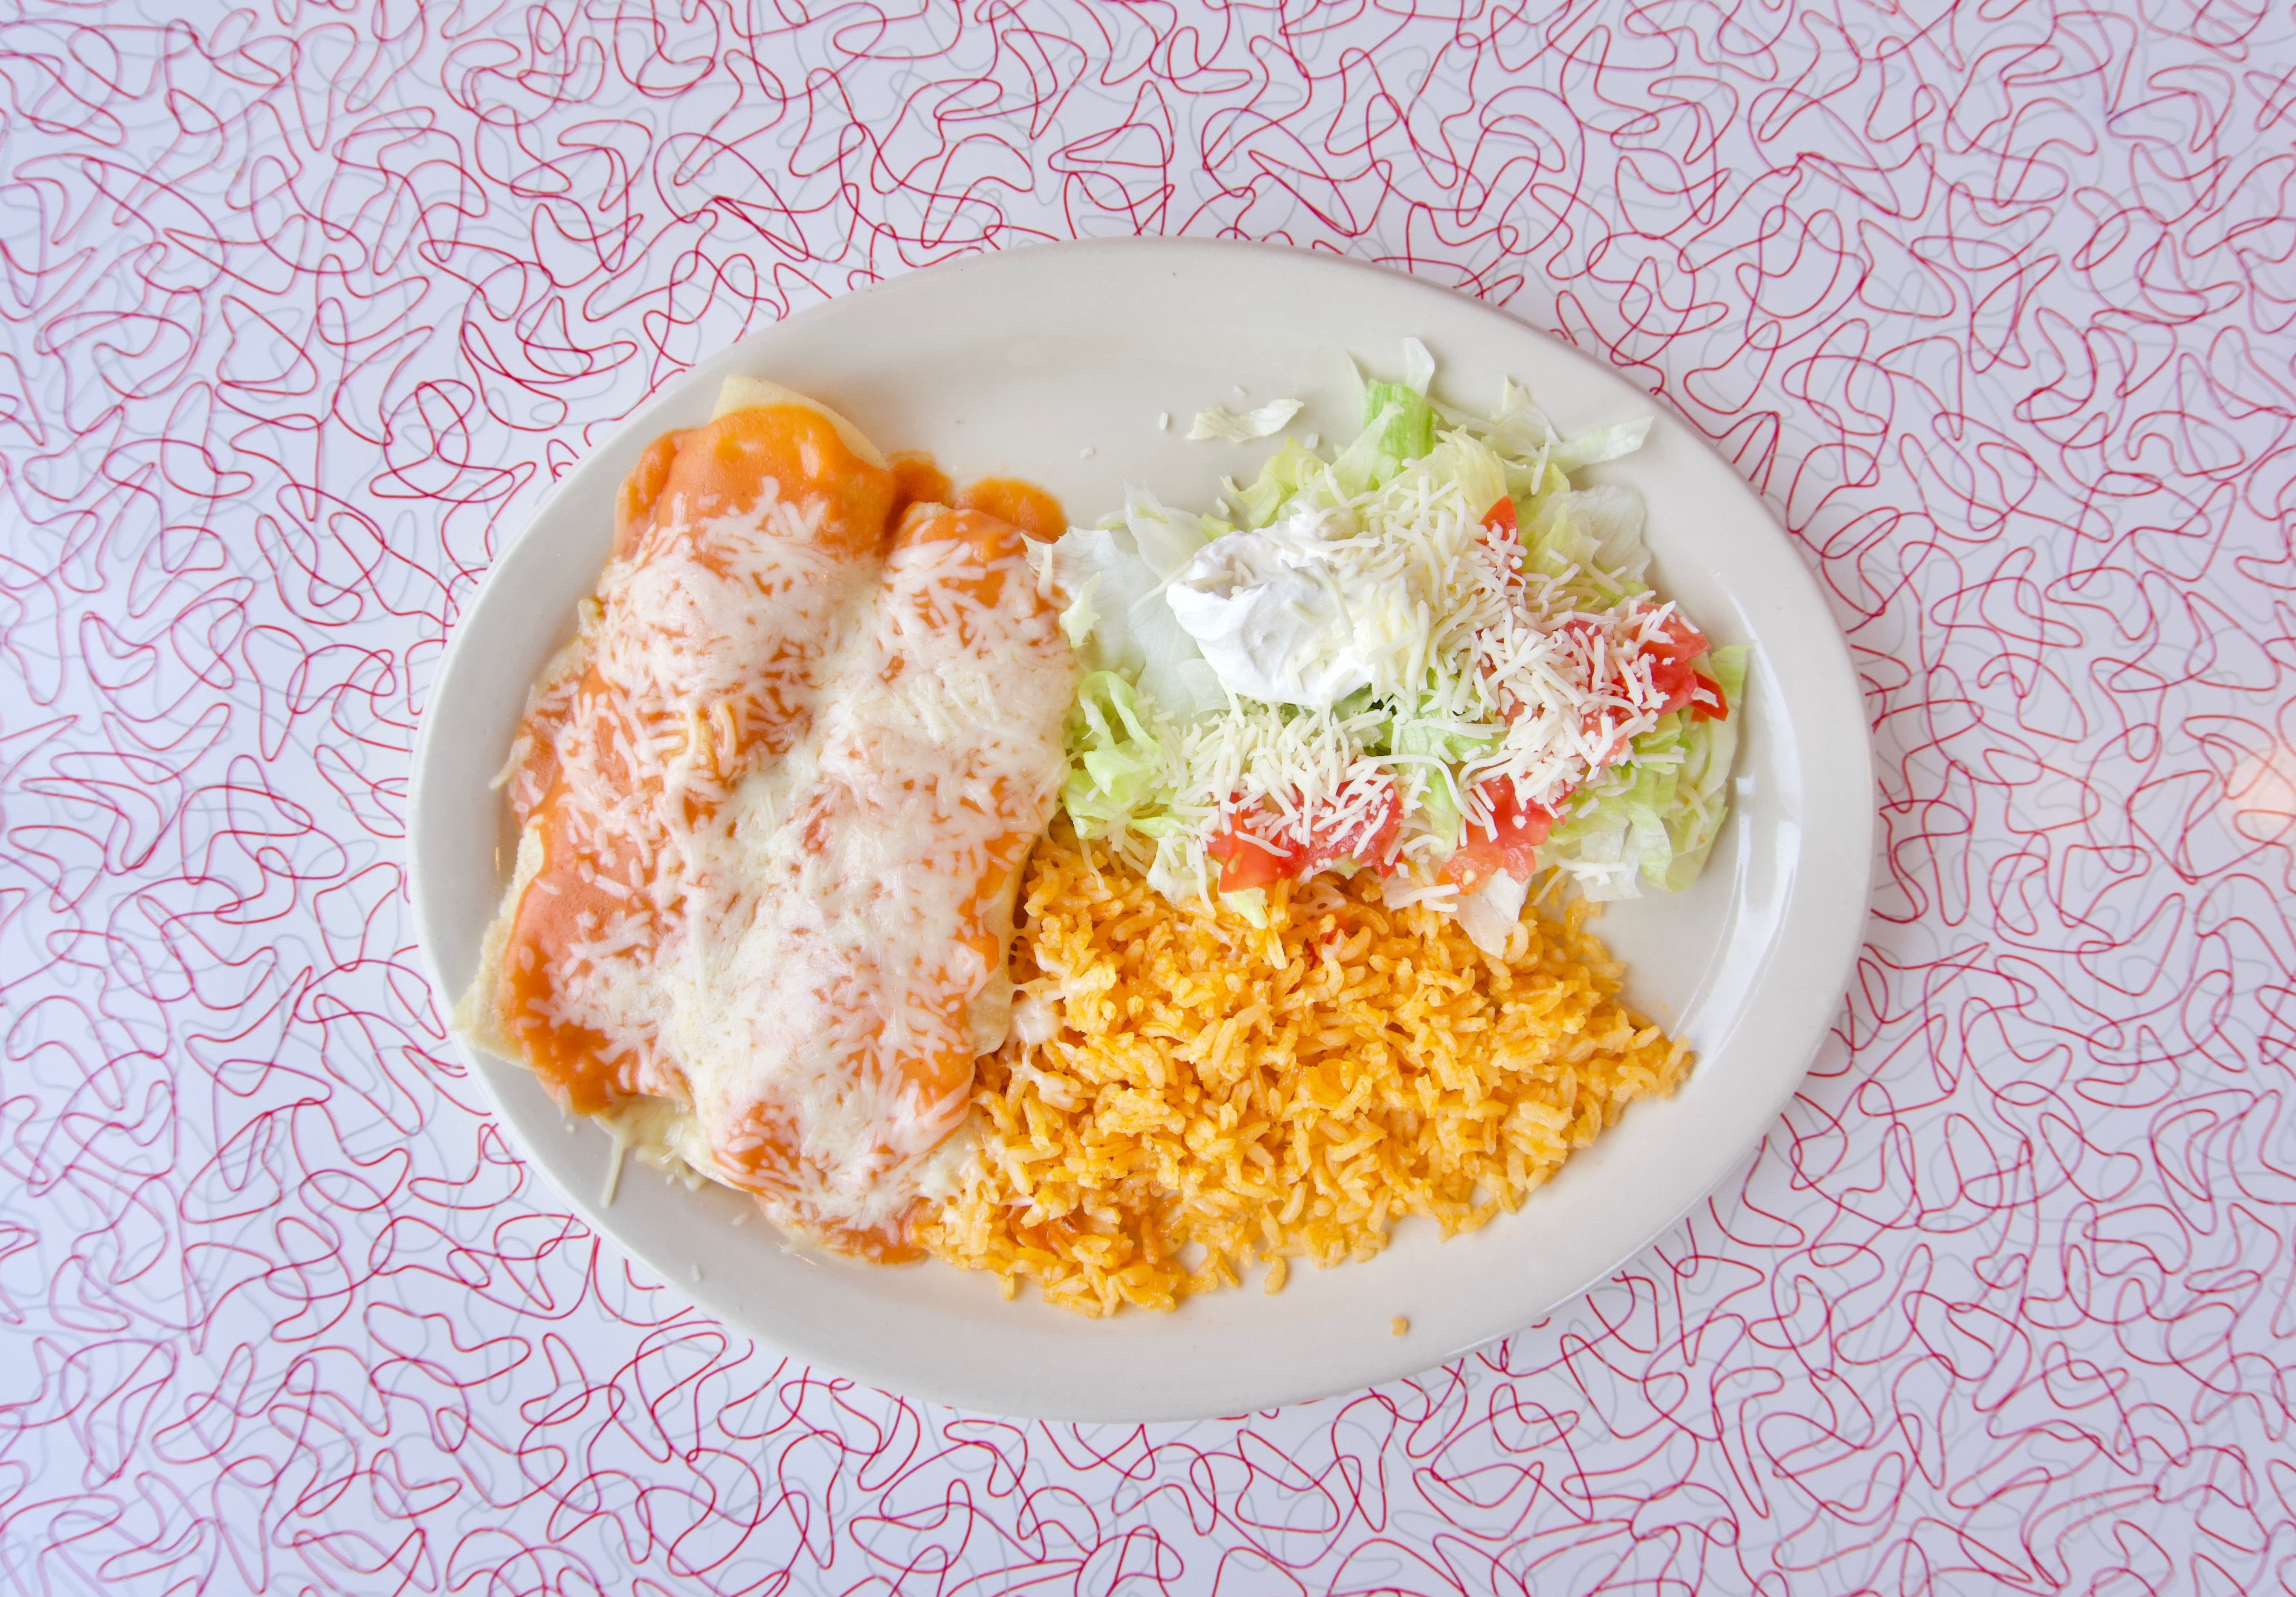 Chicken enchiladas with rice and beans / Image: Brian Planalp // Published: 5.20.18